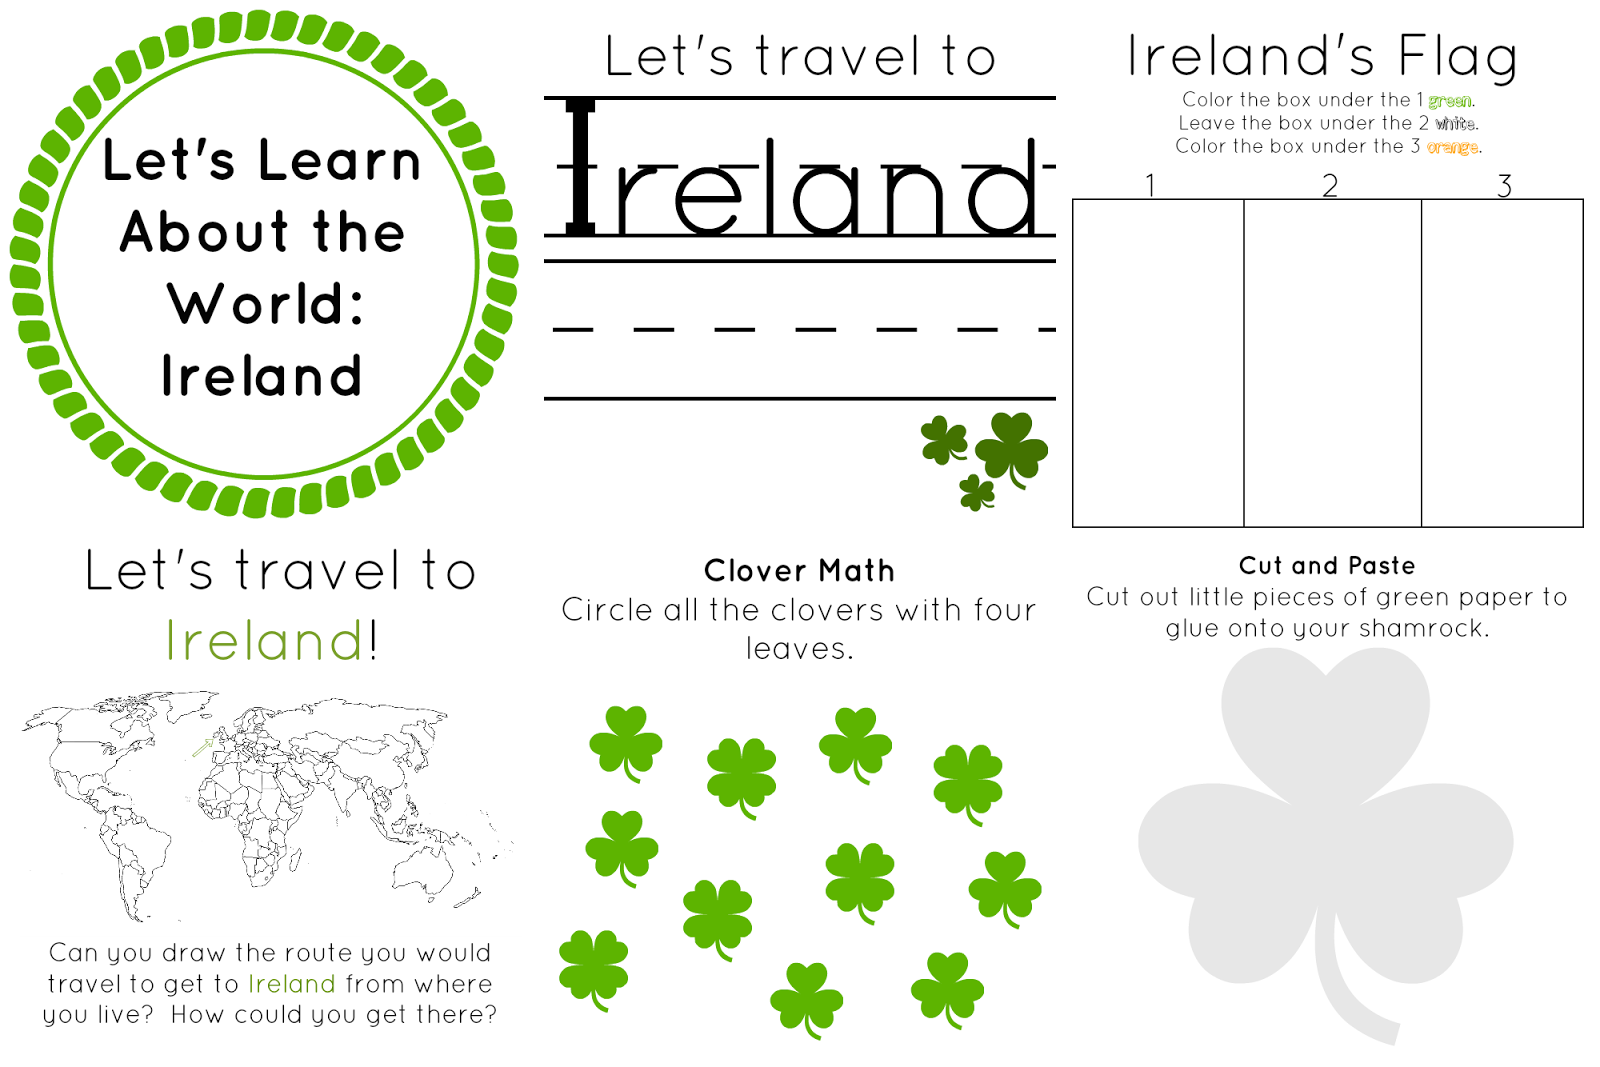 Ireland Let S Learn About The World In 2021 World Thinking Day Worksheets For Kids Preschool Worksheets [ 1067 x 1600 Pixel ]